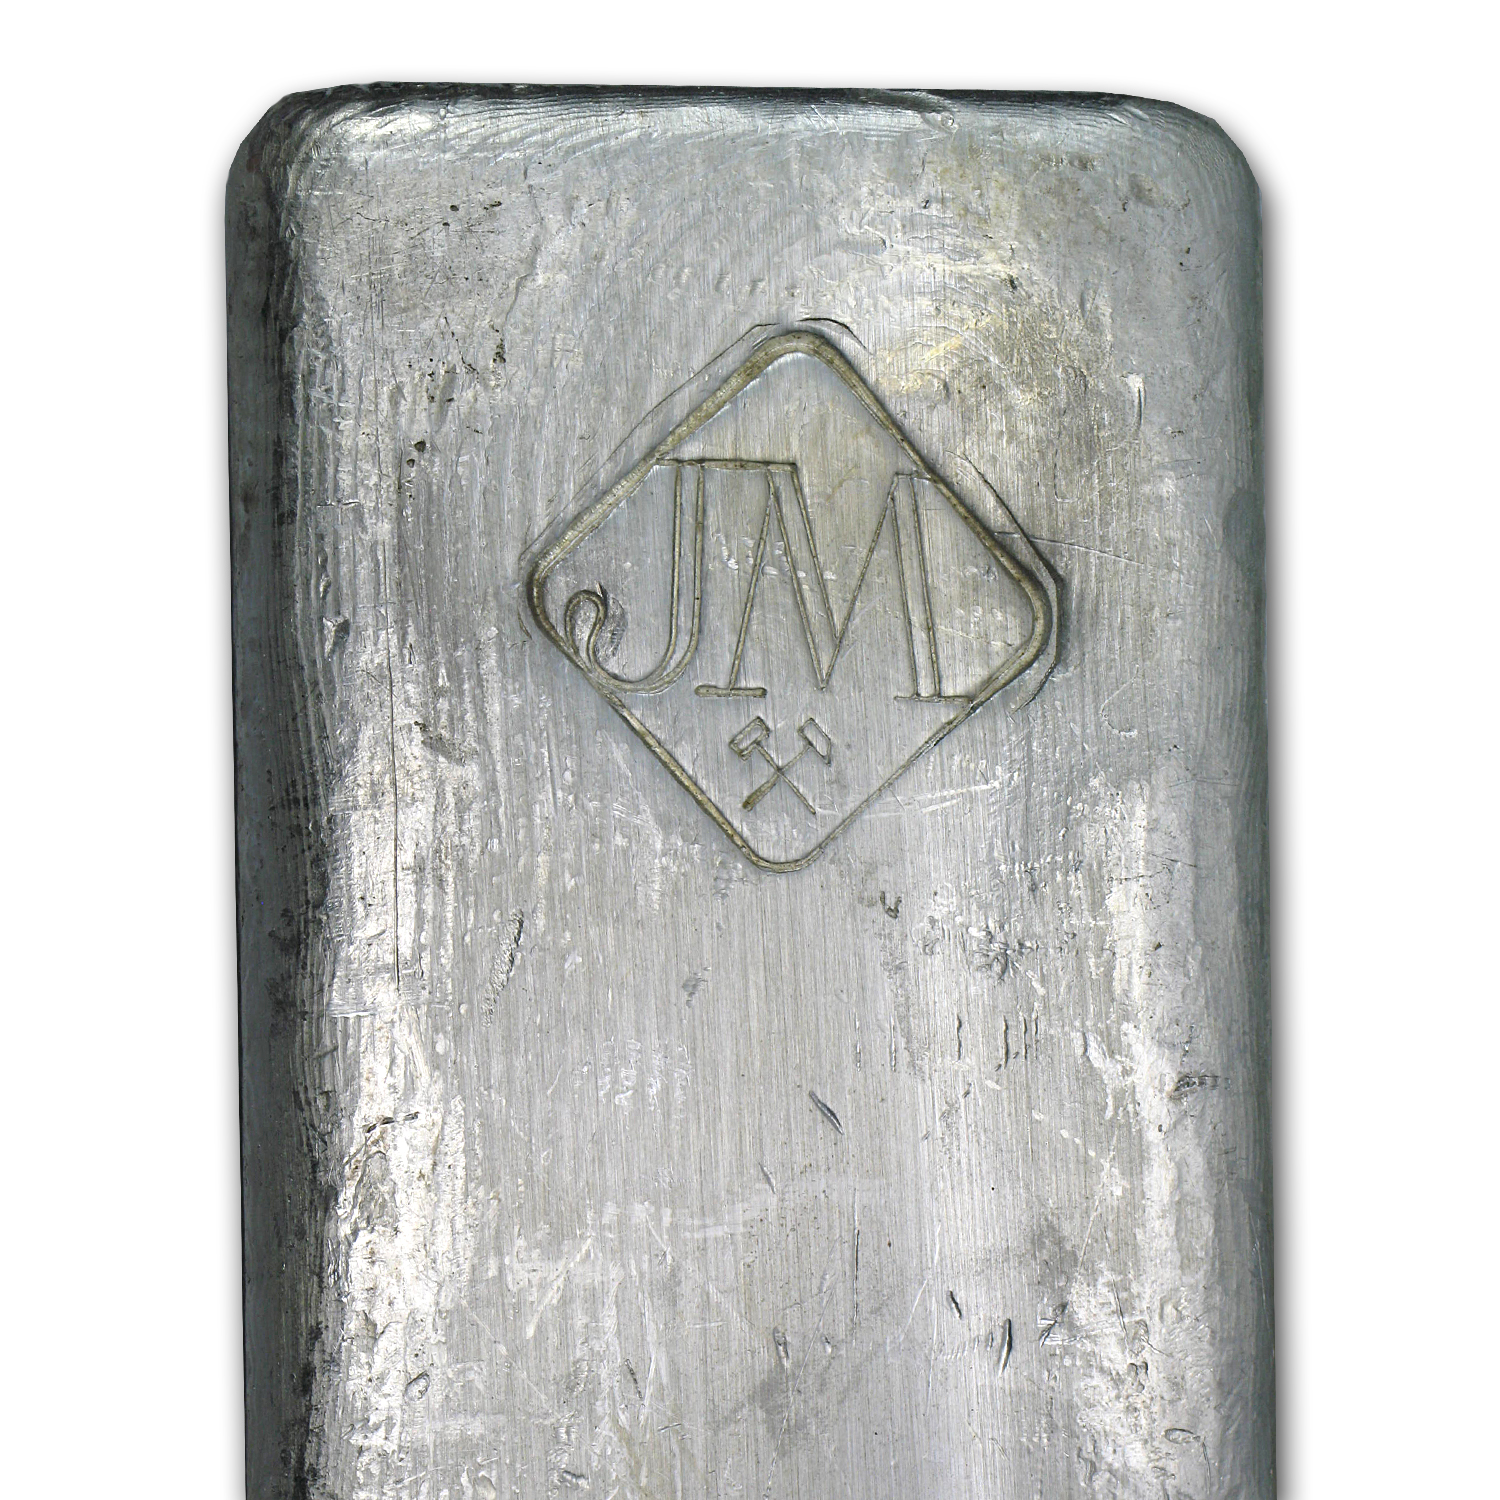 50 oz Silver Bar - Johnson Matthey (Canada, Vintage)